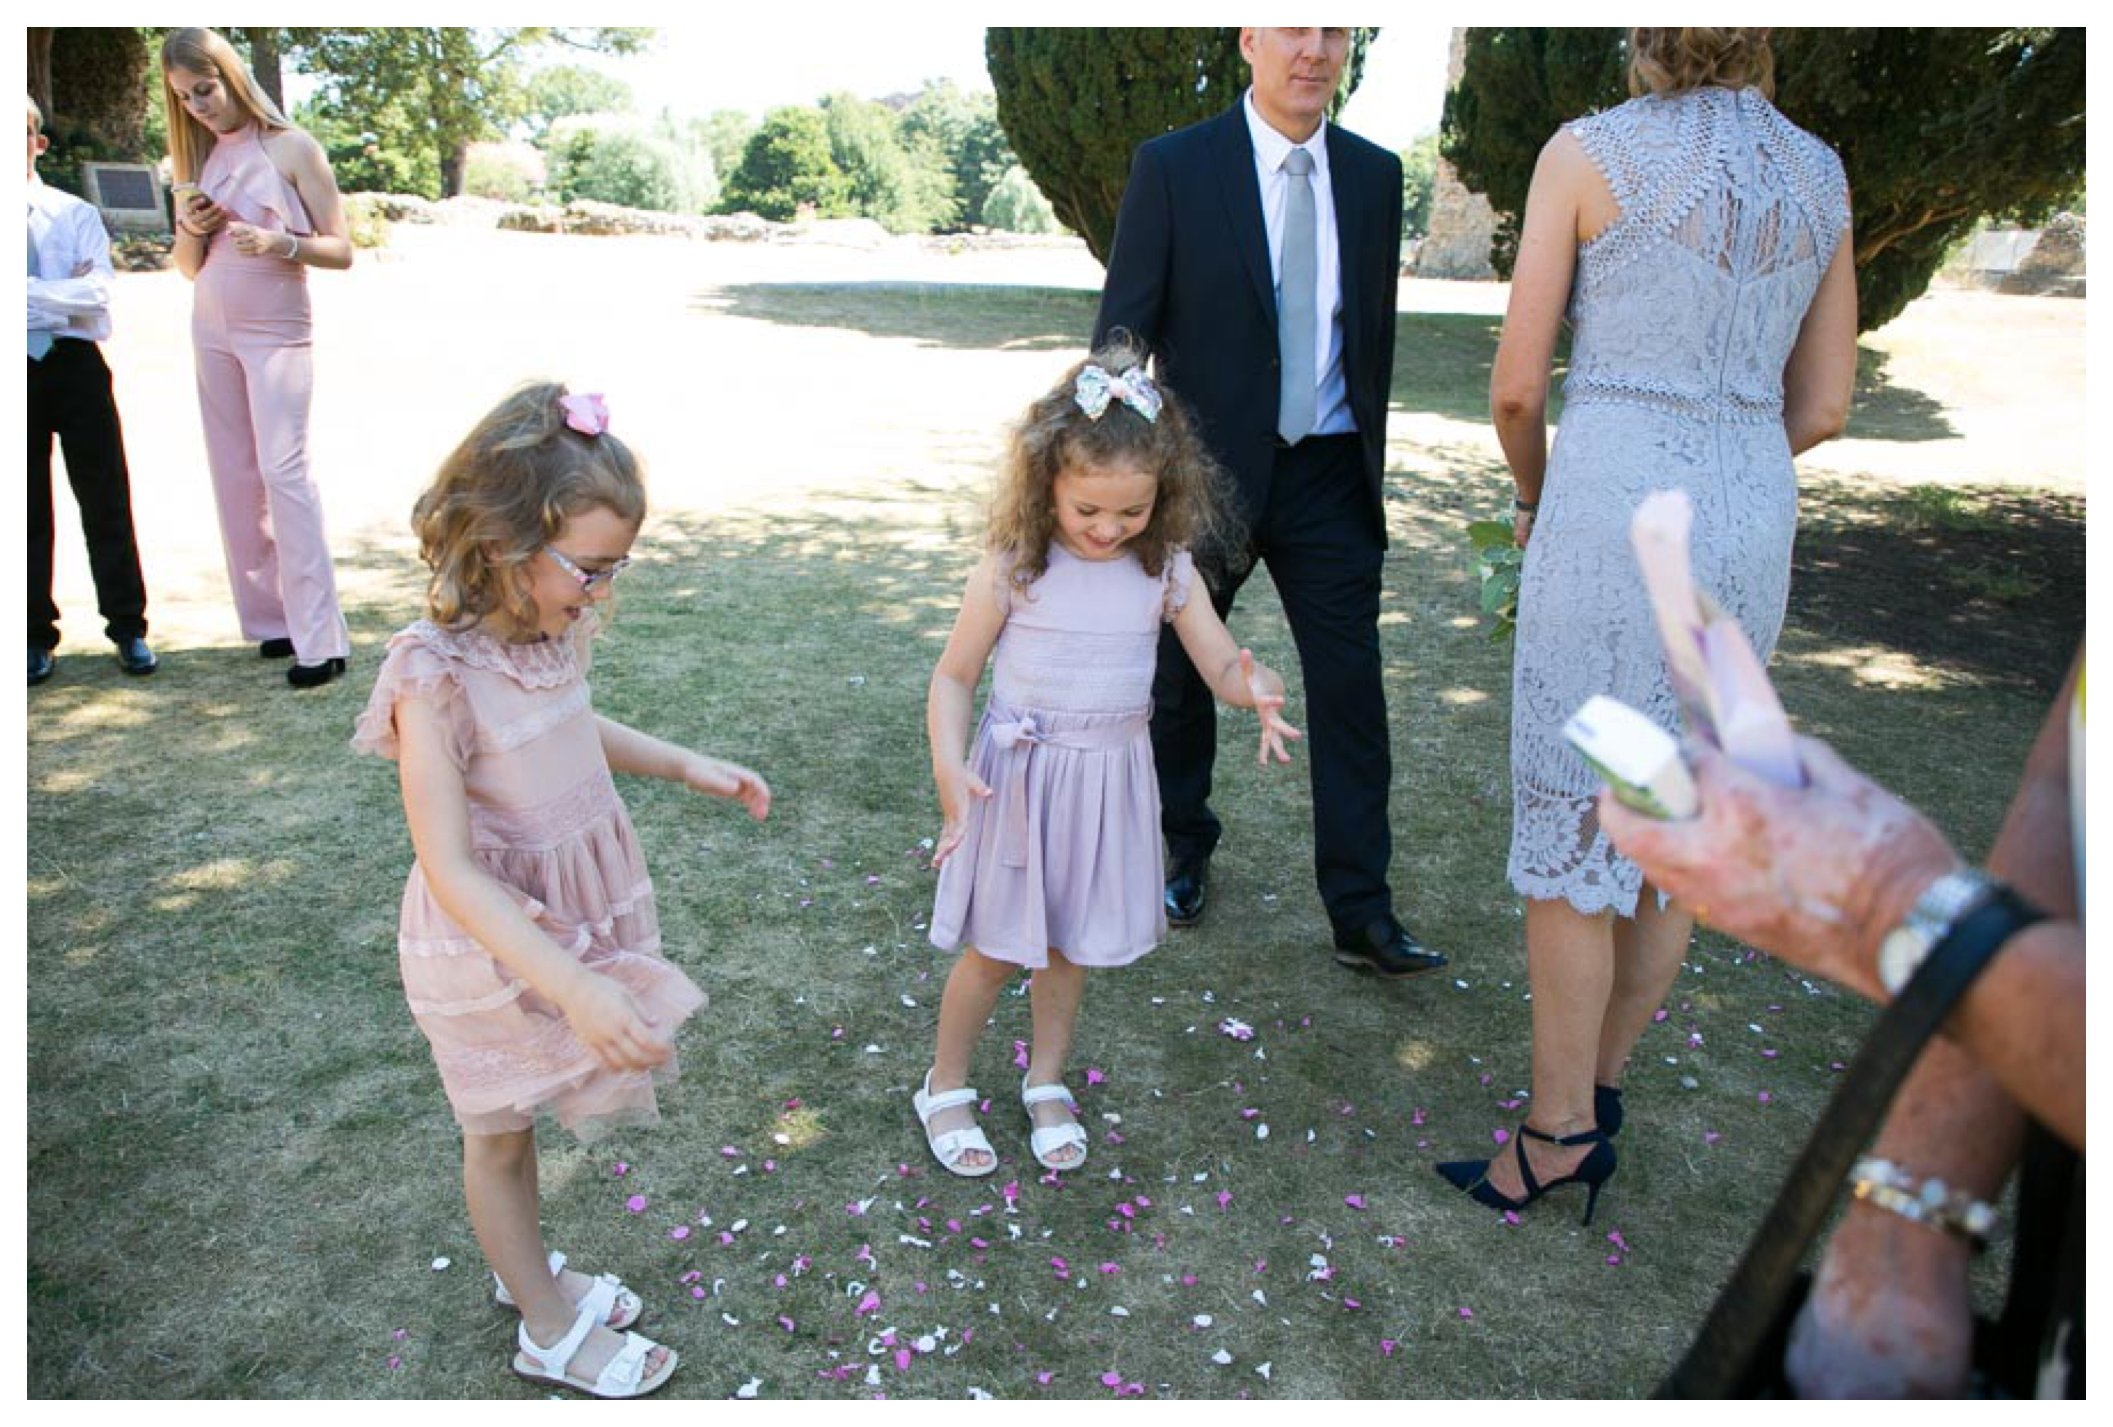 two girls in flower girl dresss playing with confettii at summer wedding